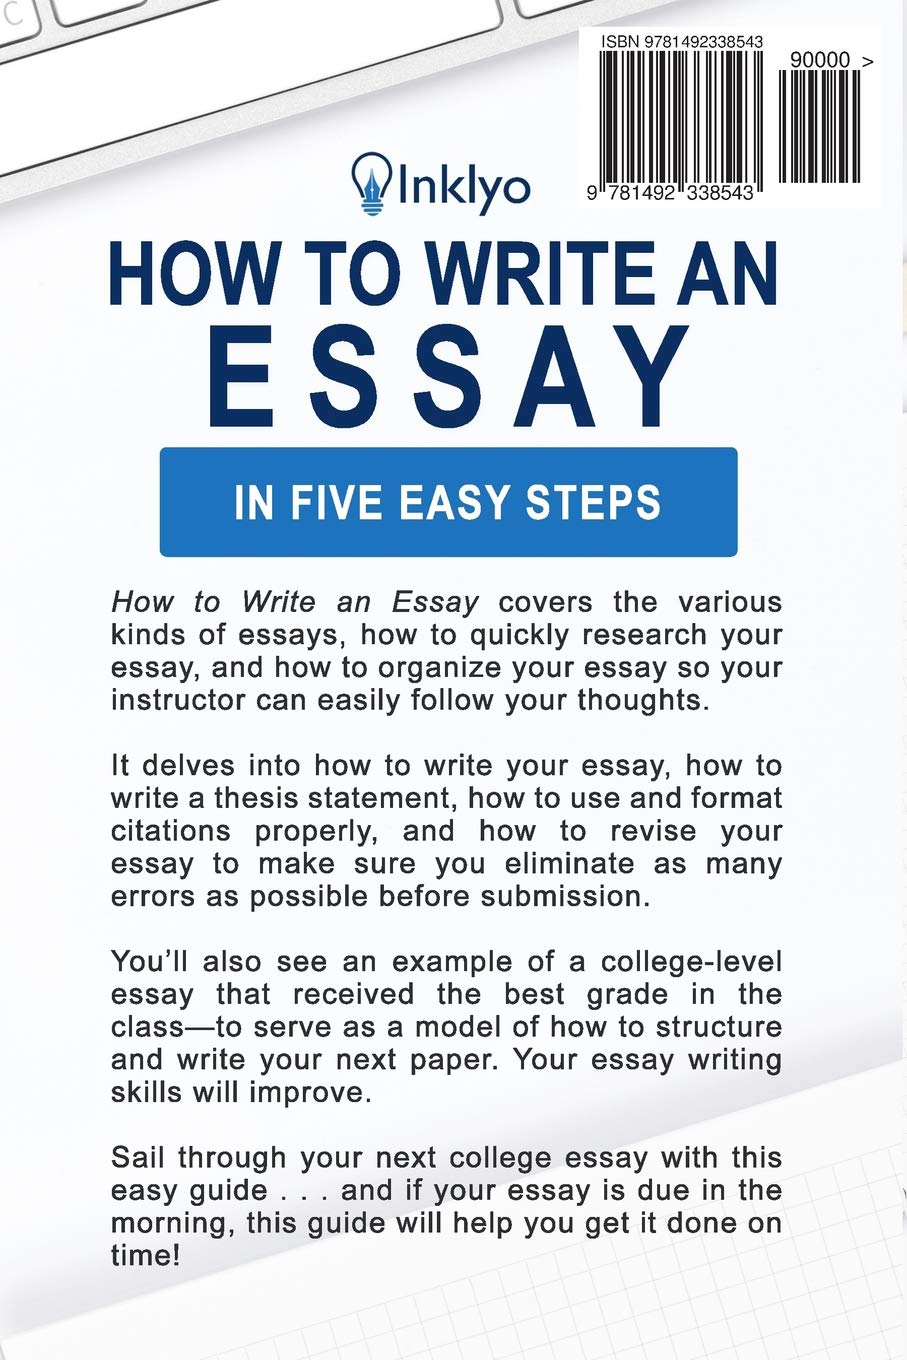 003 Write Essay Example Awful A An Win House Canada Practice Writing Online For Free Full